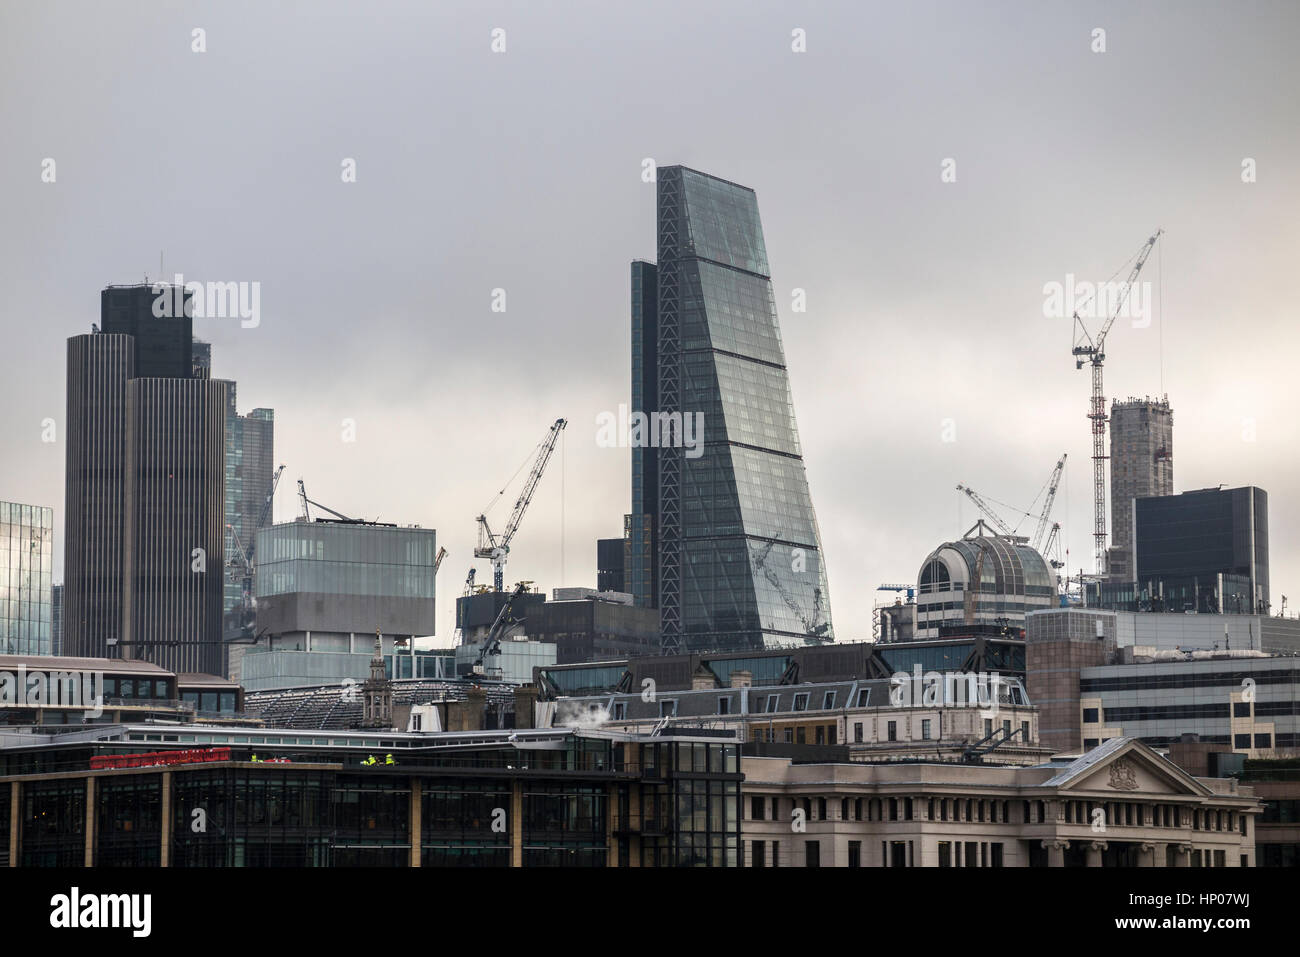 Tower cranes on the skyline of construction sites in the City of London with iconic modern architecture skyscrapers Stock Photo